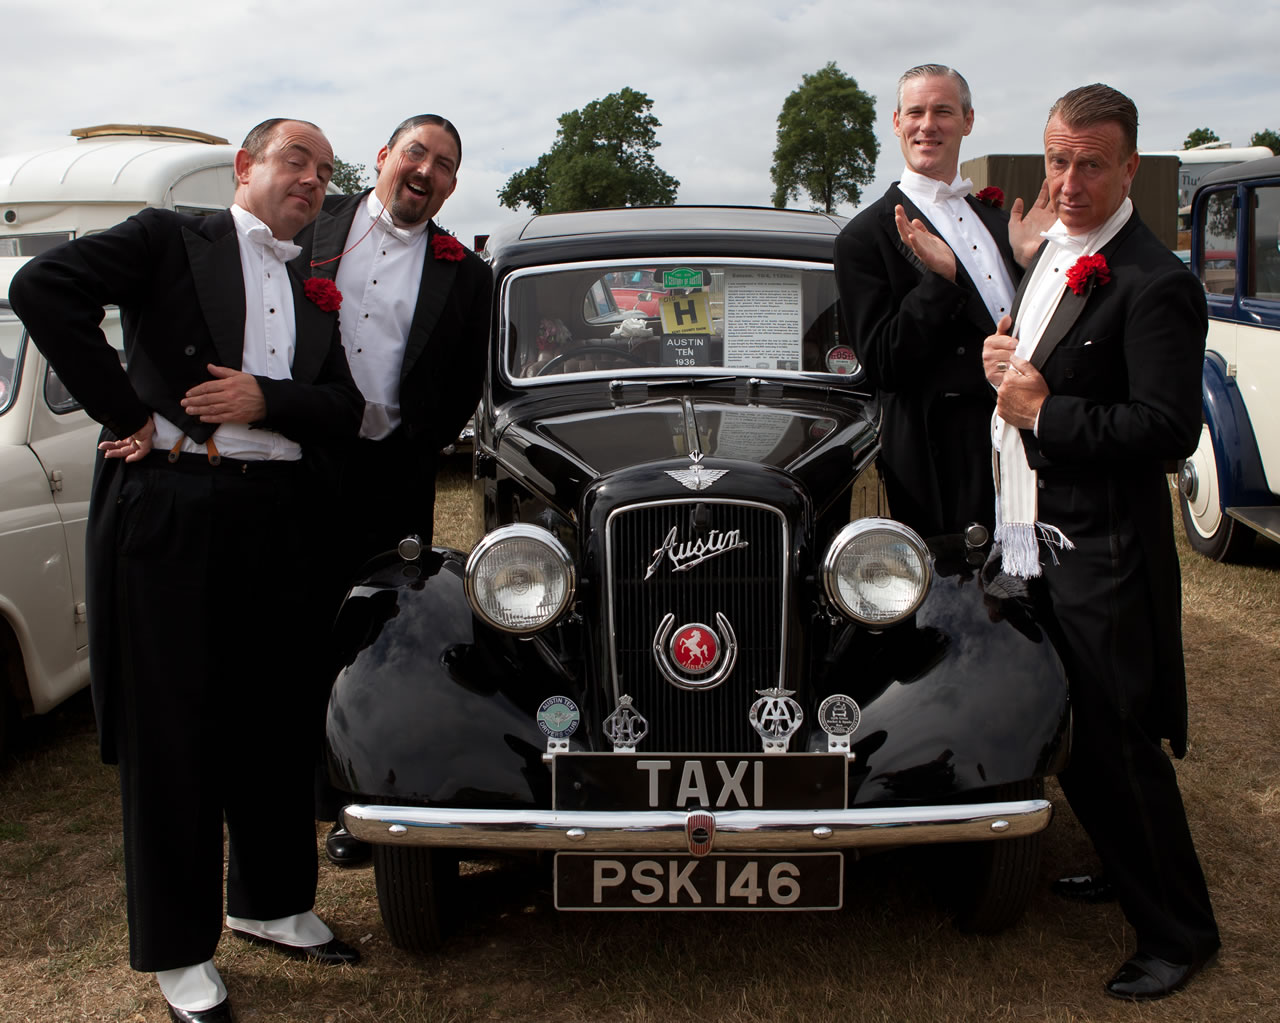 Promo Toffs In Tails  Stockport, Greater Manchester, Lancashire